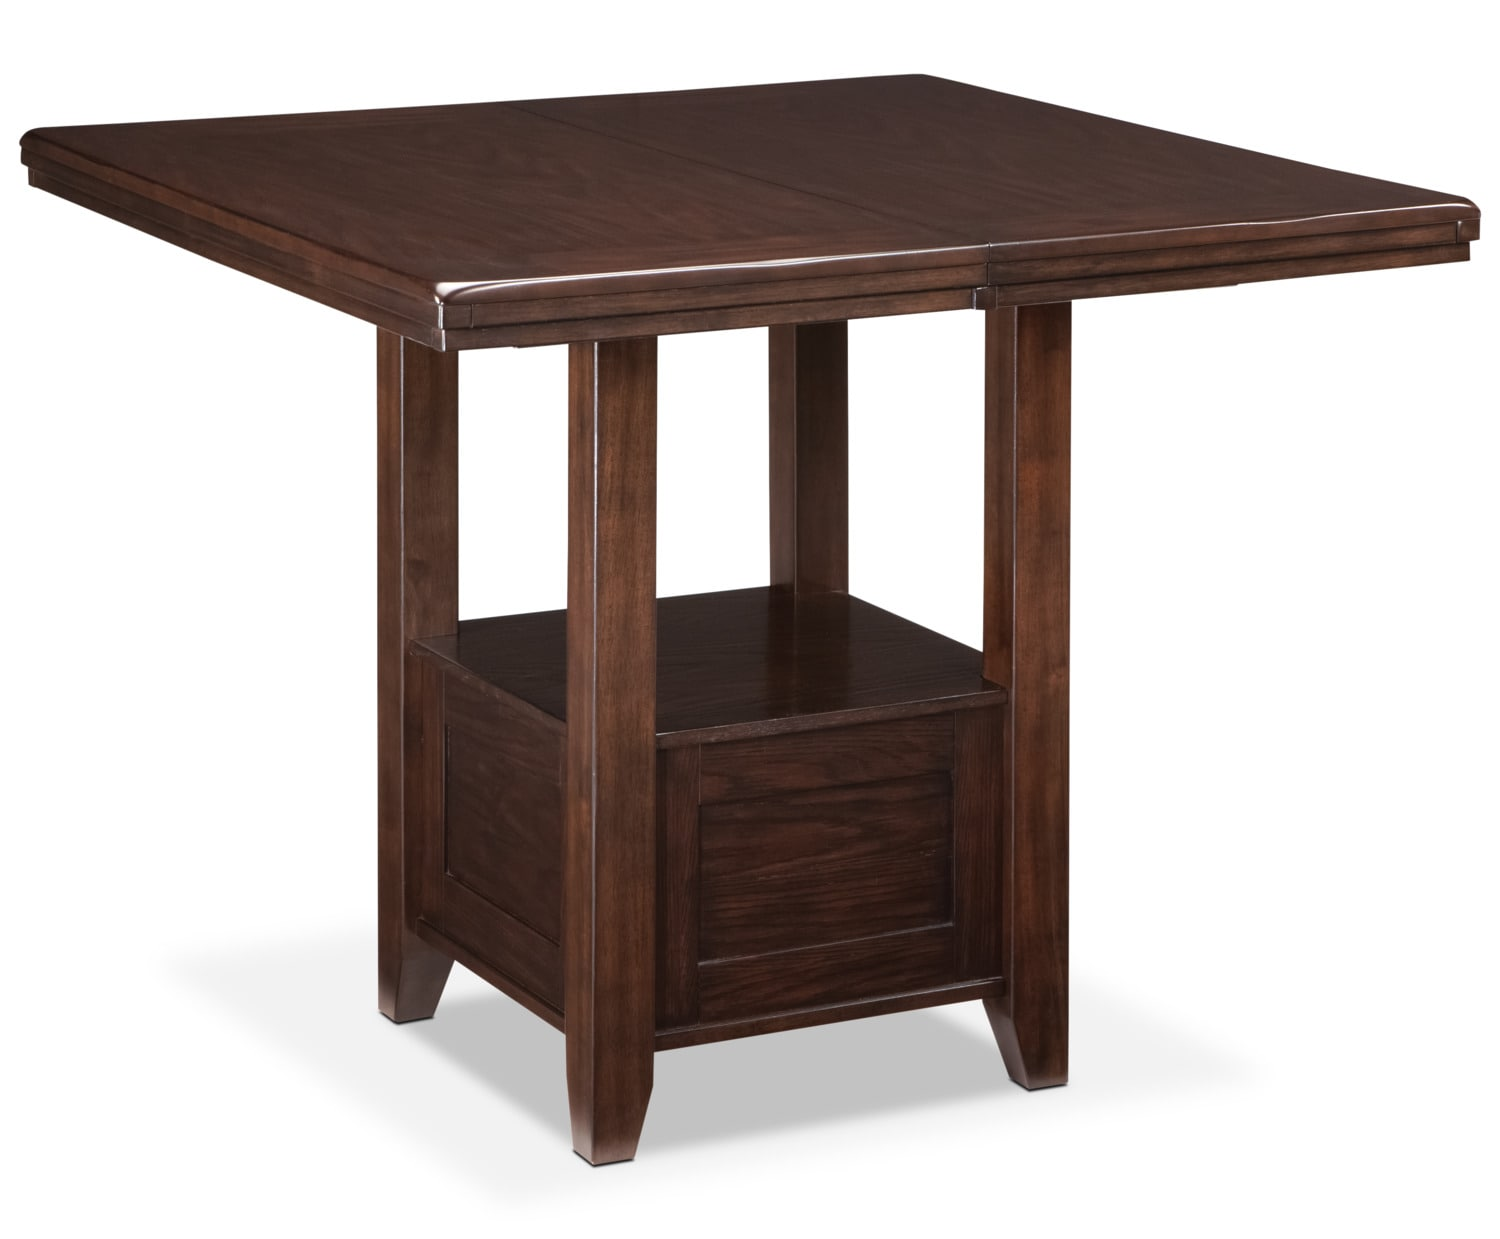 Dining Room Furniture - Haddigan Counter-Height Dining Table